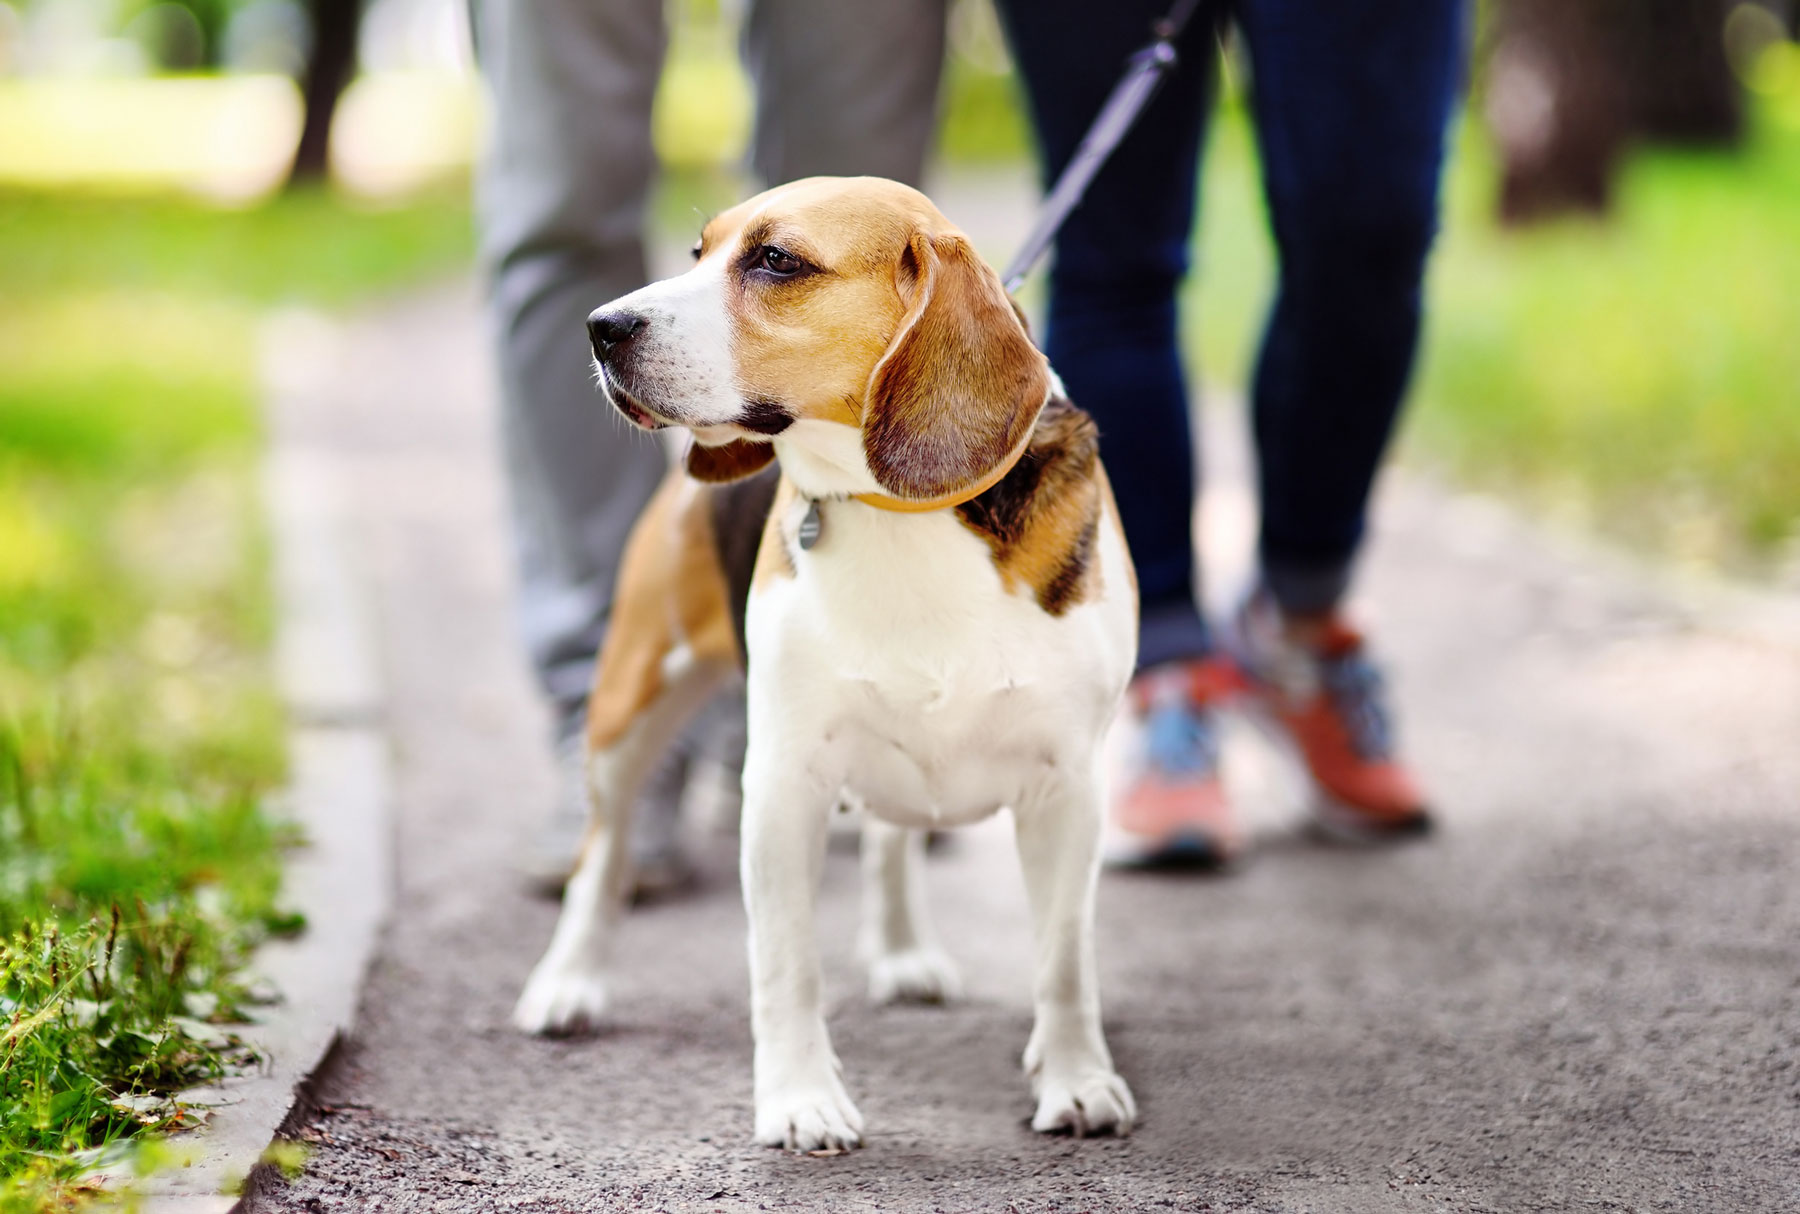 January is Walk Your Dog Month!